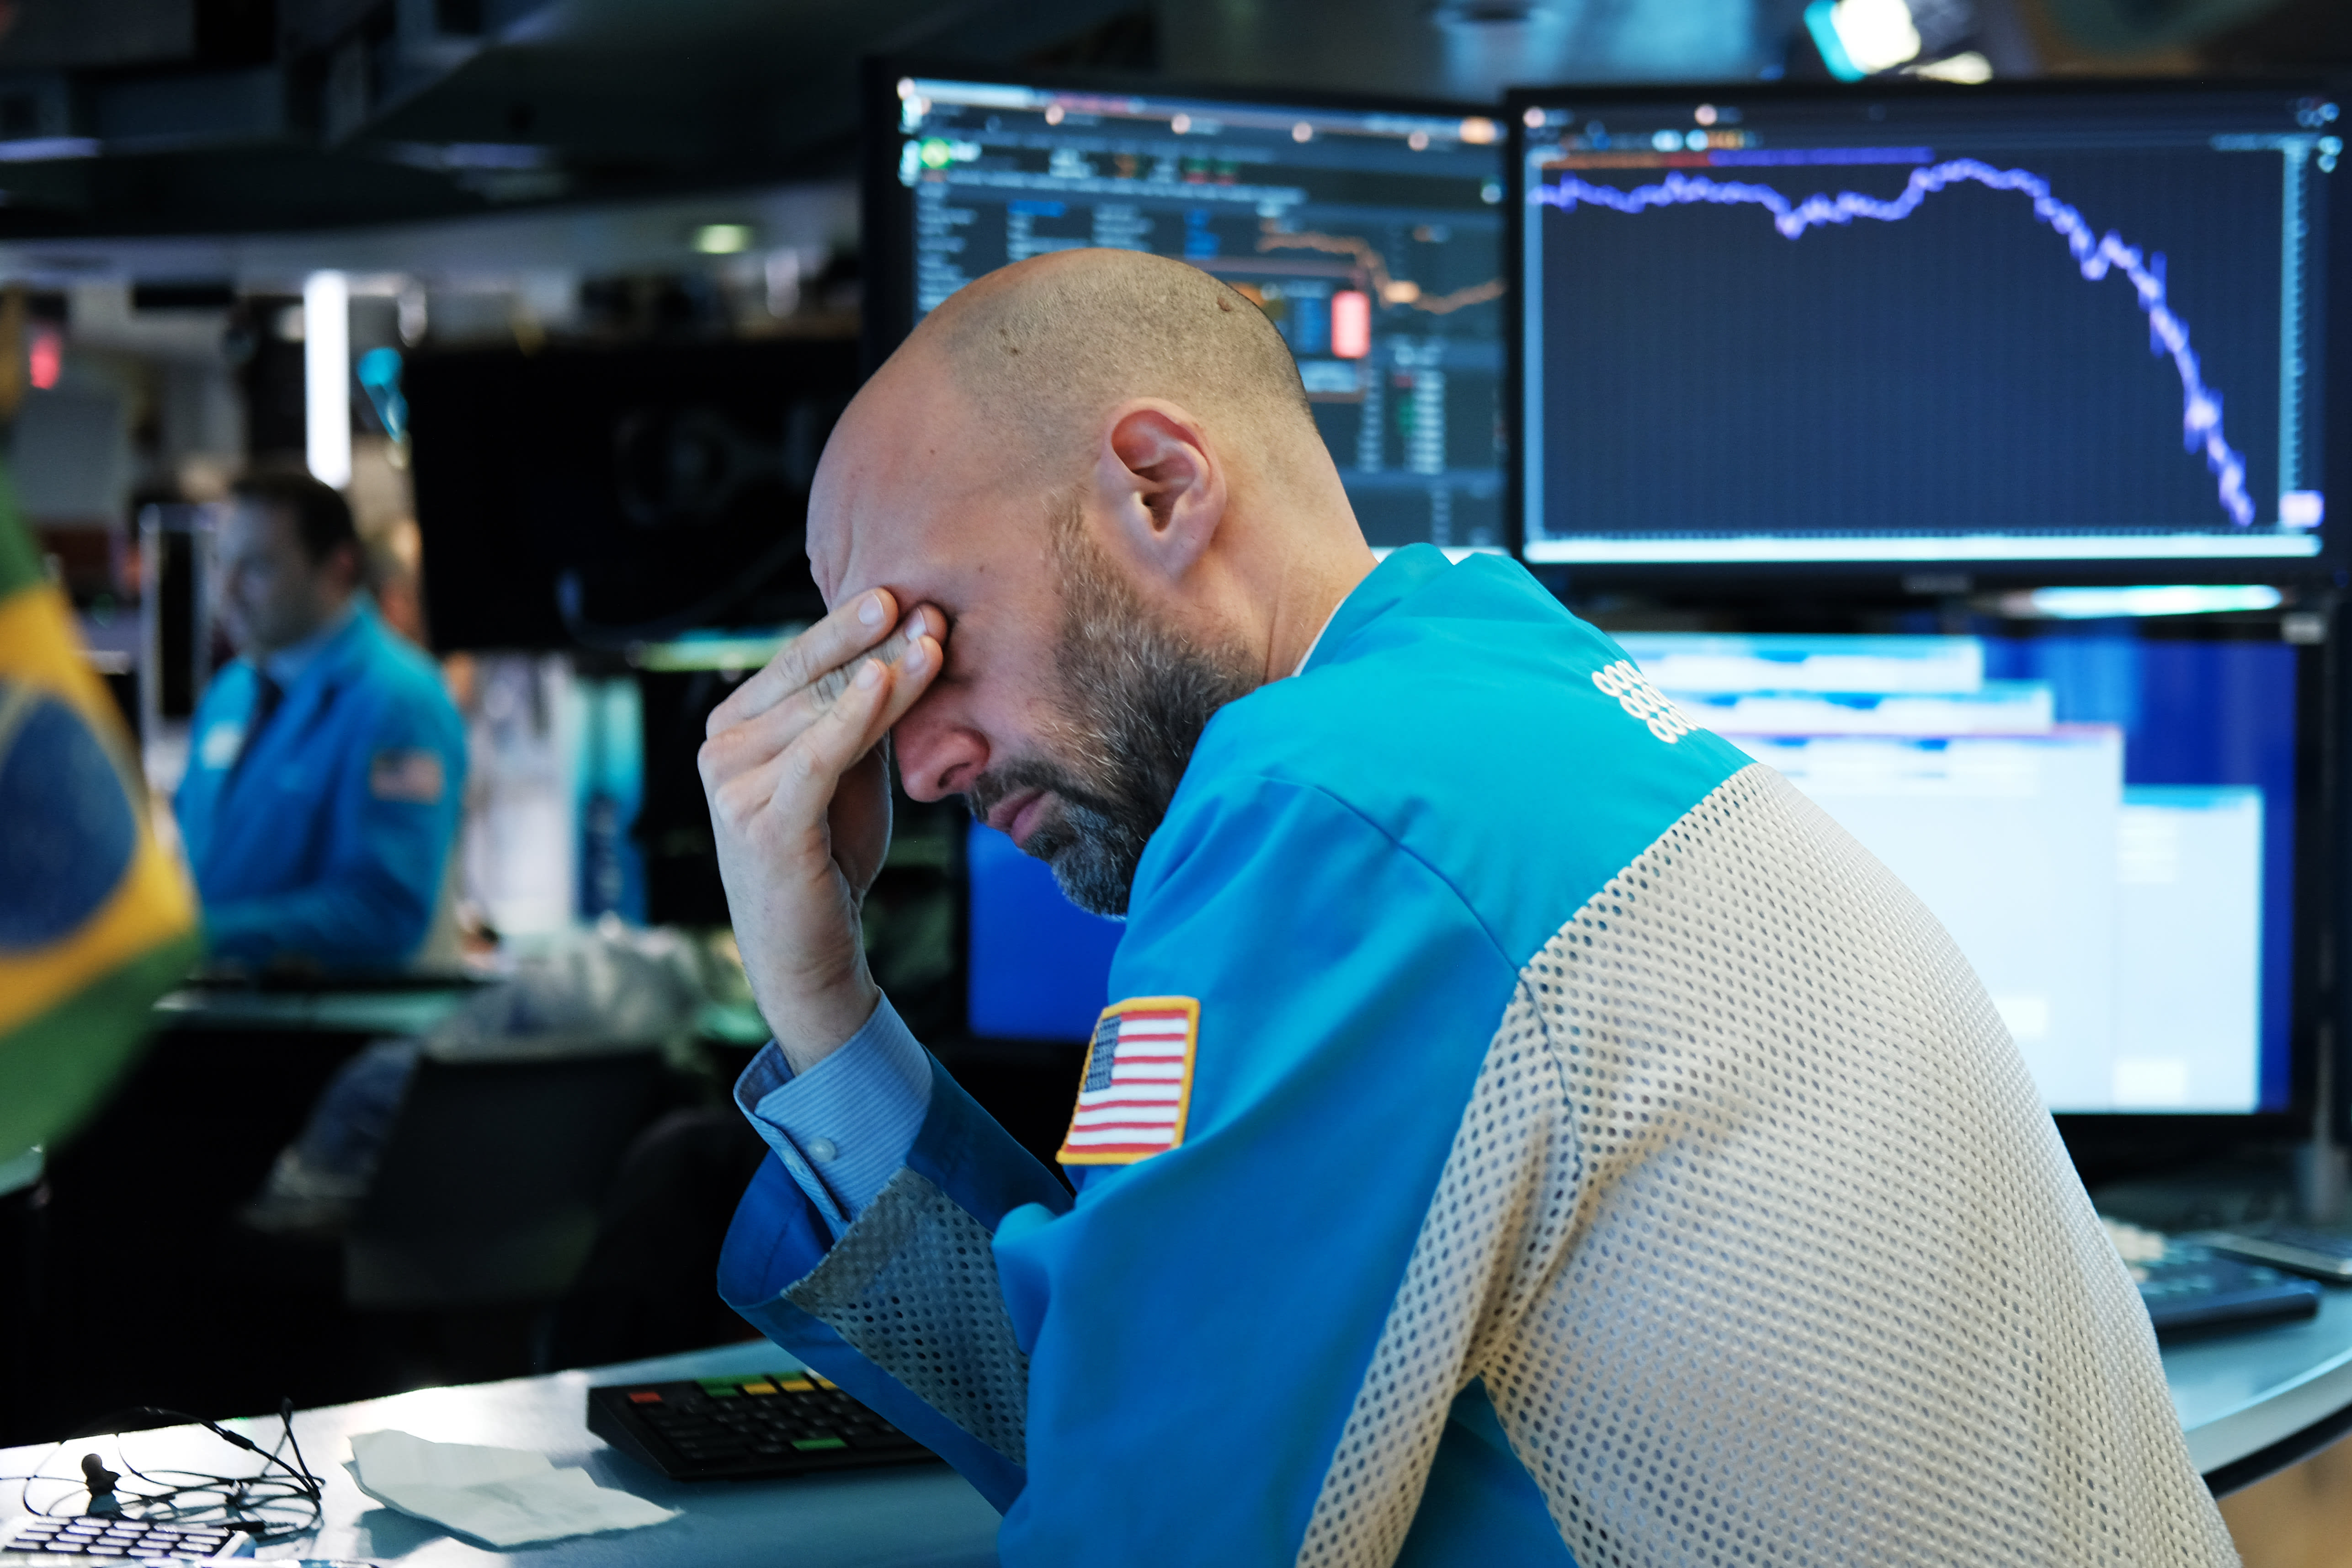 The market is so haywire some Wall Street strategists threw in the towel on giving S&P 500 targets